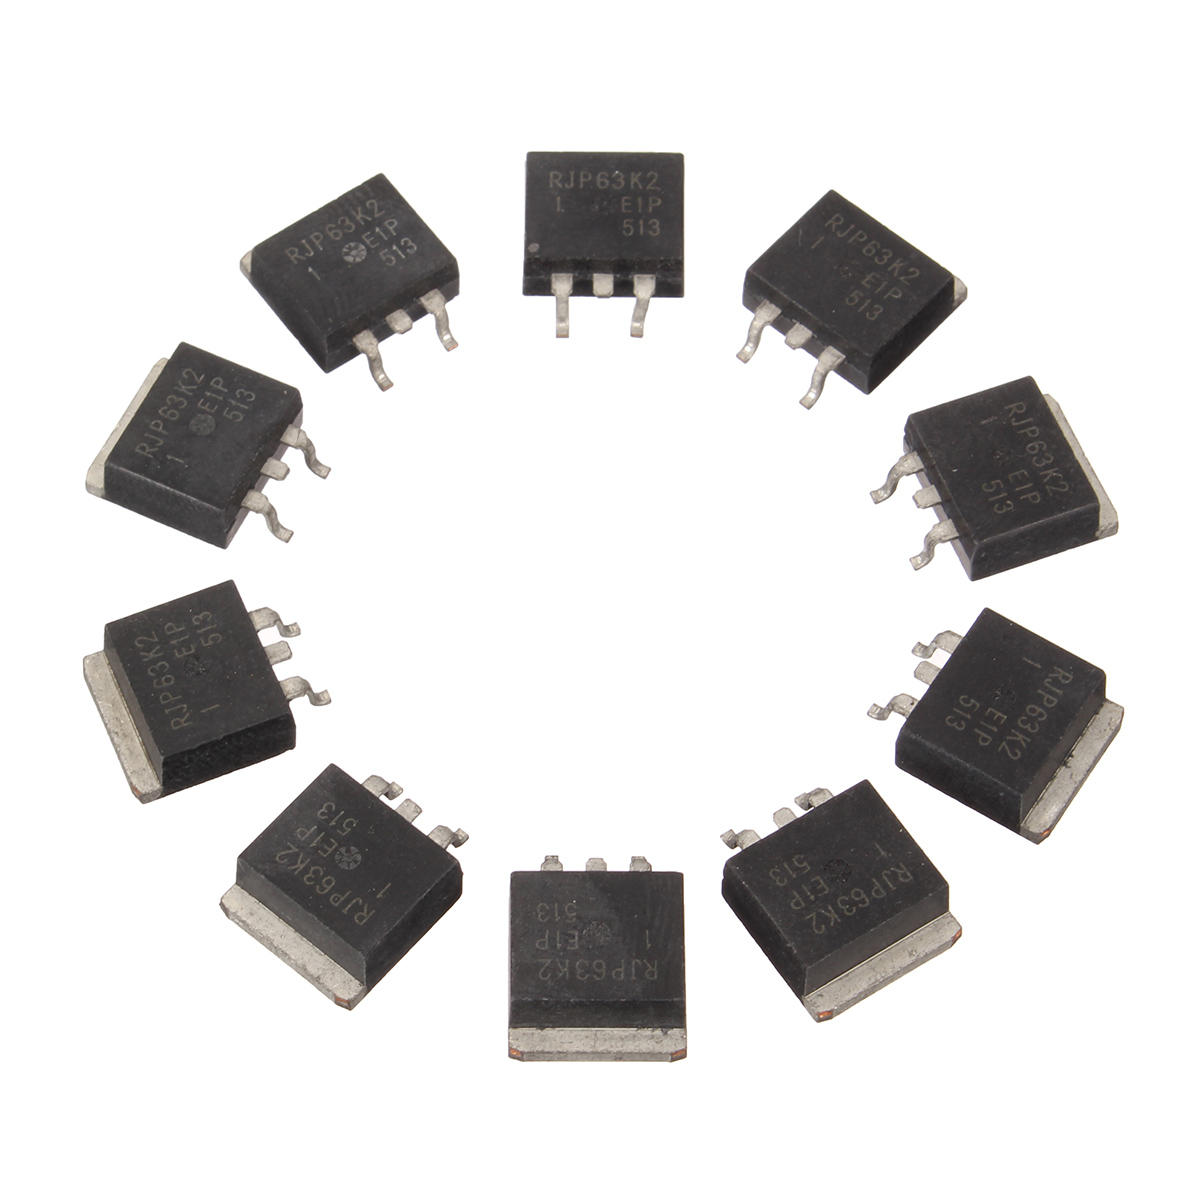 10 Pcs RJP63K2 TO-263 63K2 TO263 Chip IC